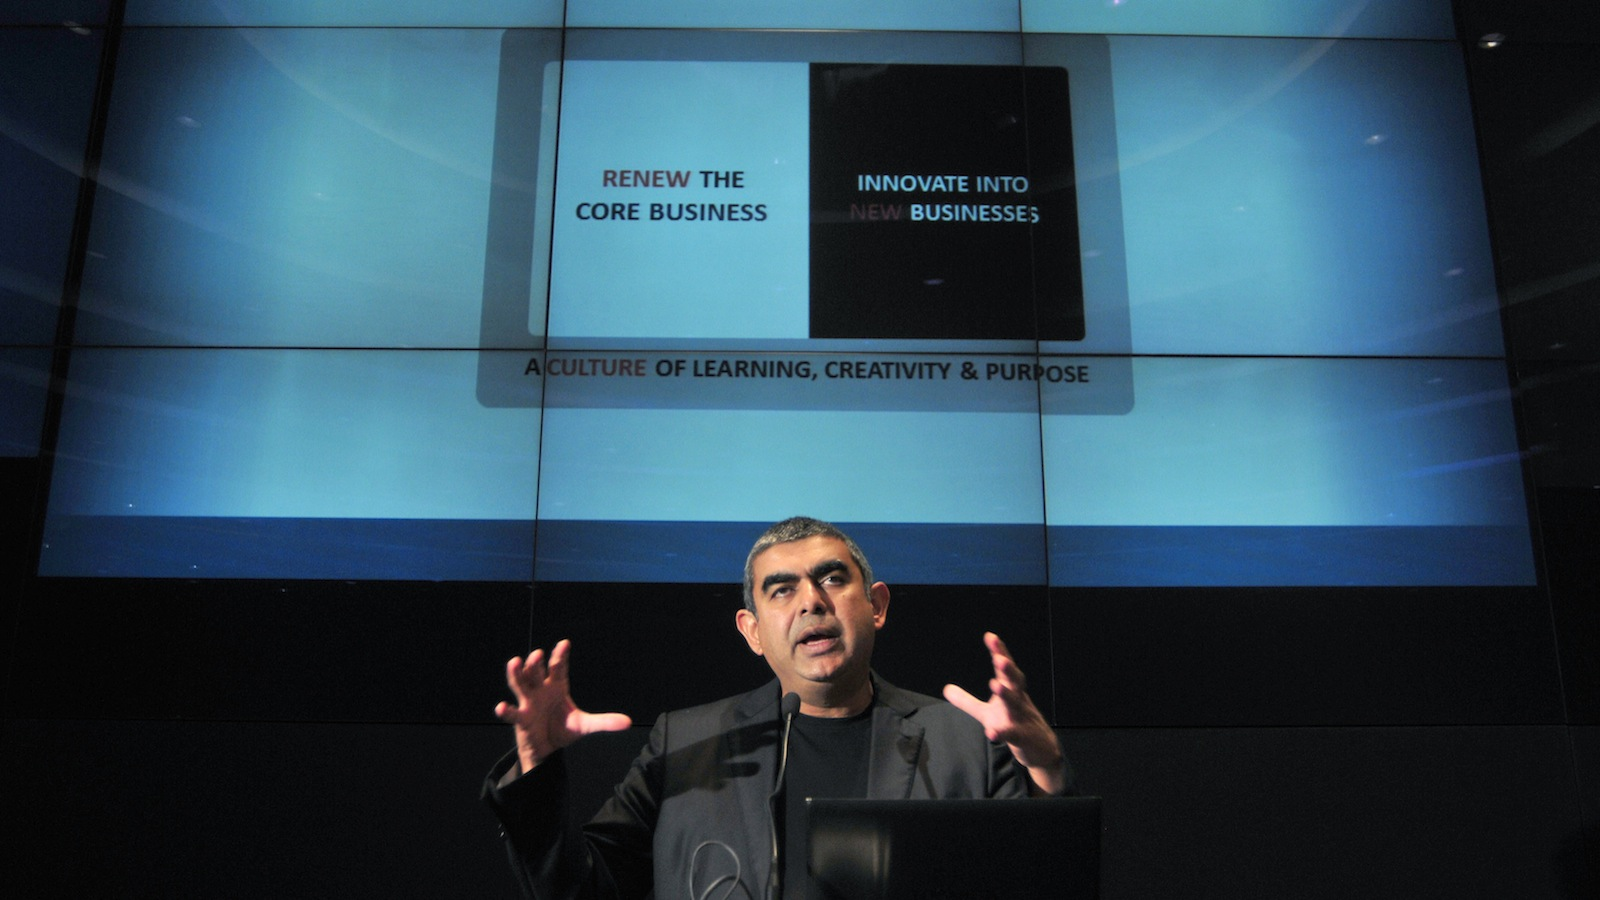 Infosys Chief Executive Officer Vishal Sikka speaks during the announcement of the company's quarterly financial results at the company's headquarters in the southern Indian city of Bangalore October 10, 2014. Infosys Ltd wants to revive growth through automation and artificial intelligence, Sikka said on Friday, boosting investors' confidence in India's second largest IT exporter after it posted a forecast-beating quarterly profit. REUTERS/Abhishek N. Chinnappa